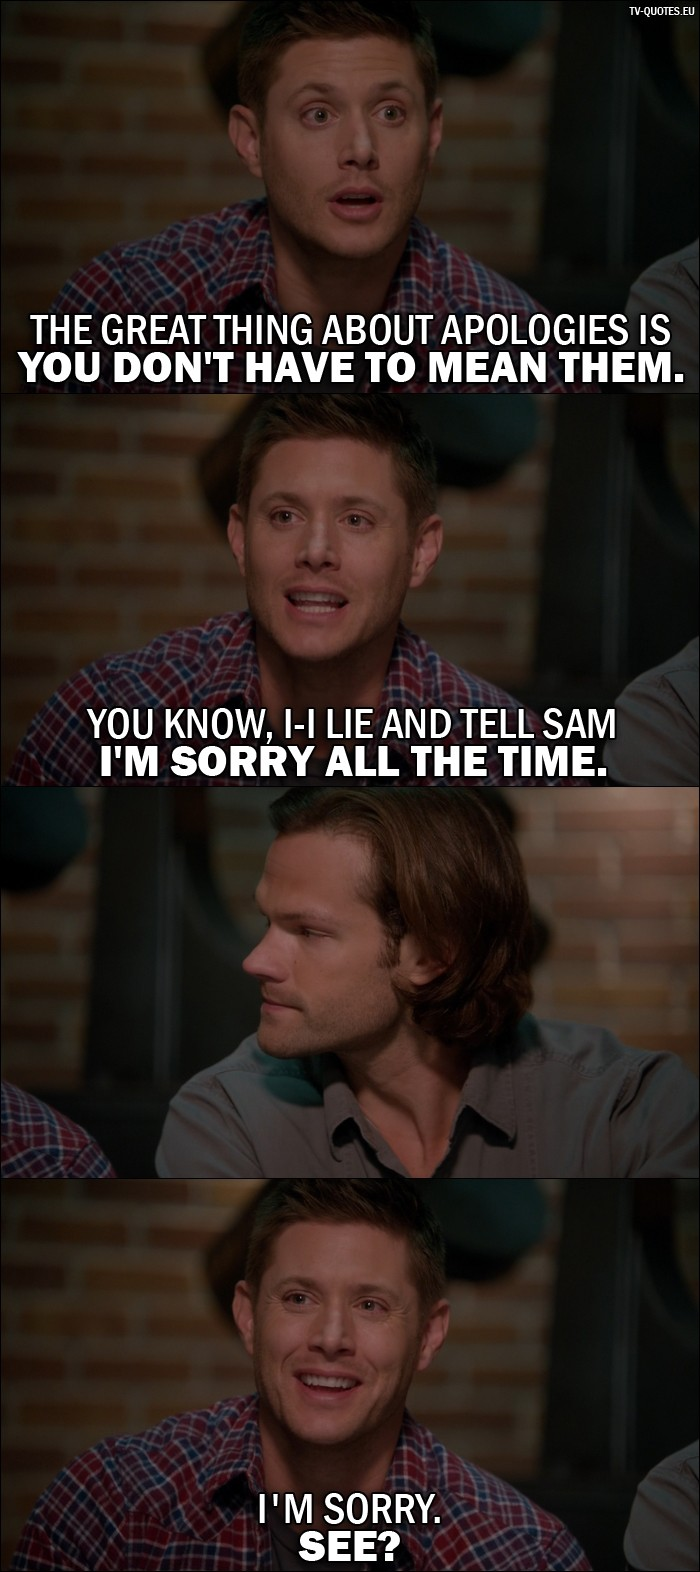 Supernatural quote from 11x22 - Dean Winchester: The great thing about apologies is you don't have to mean them. You know, I-I lie and tell Sam I'm sorry all the time. (confused Sam looks at Dean) I'm sorry. See?